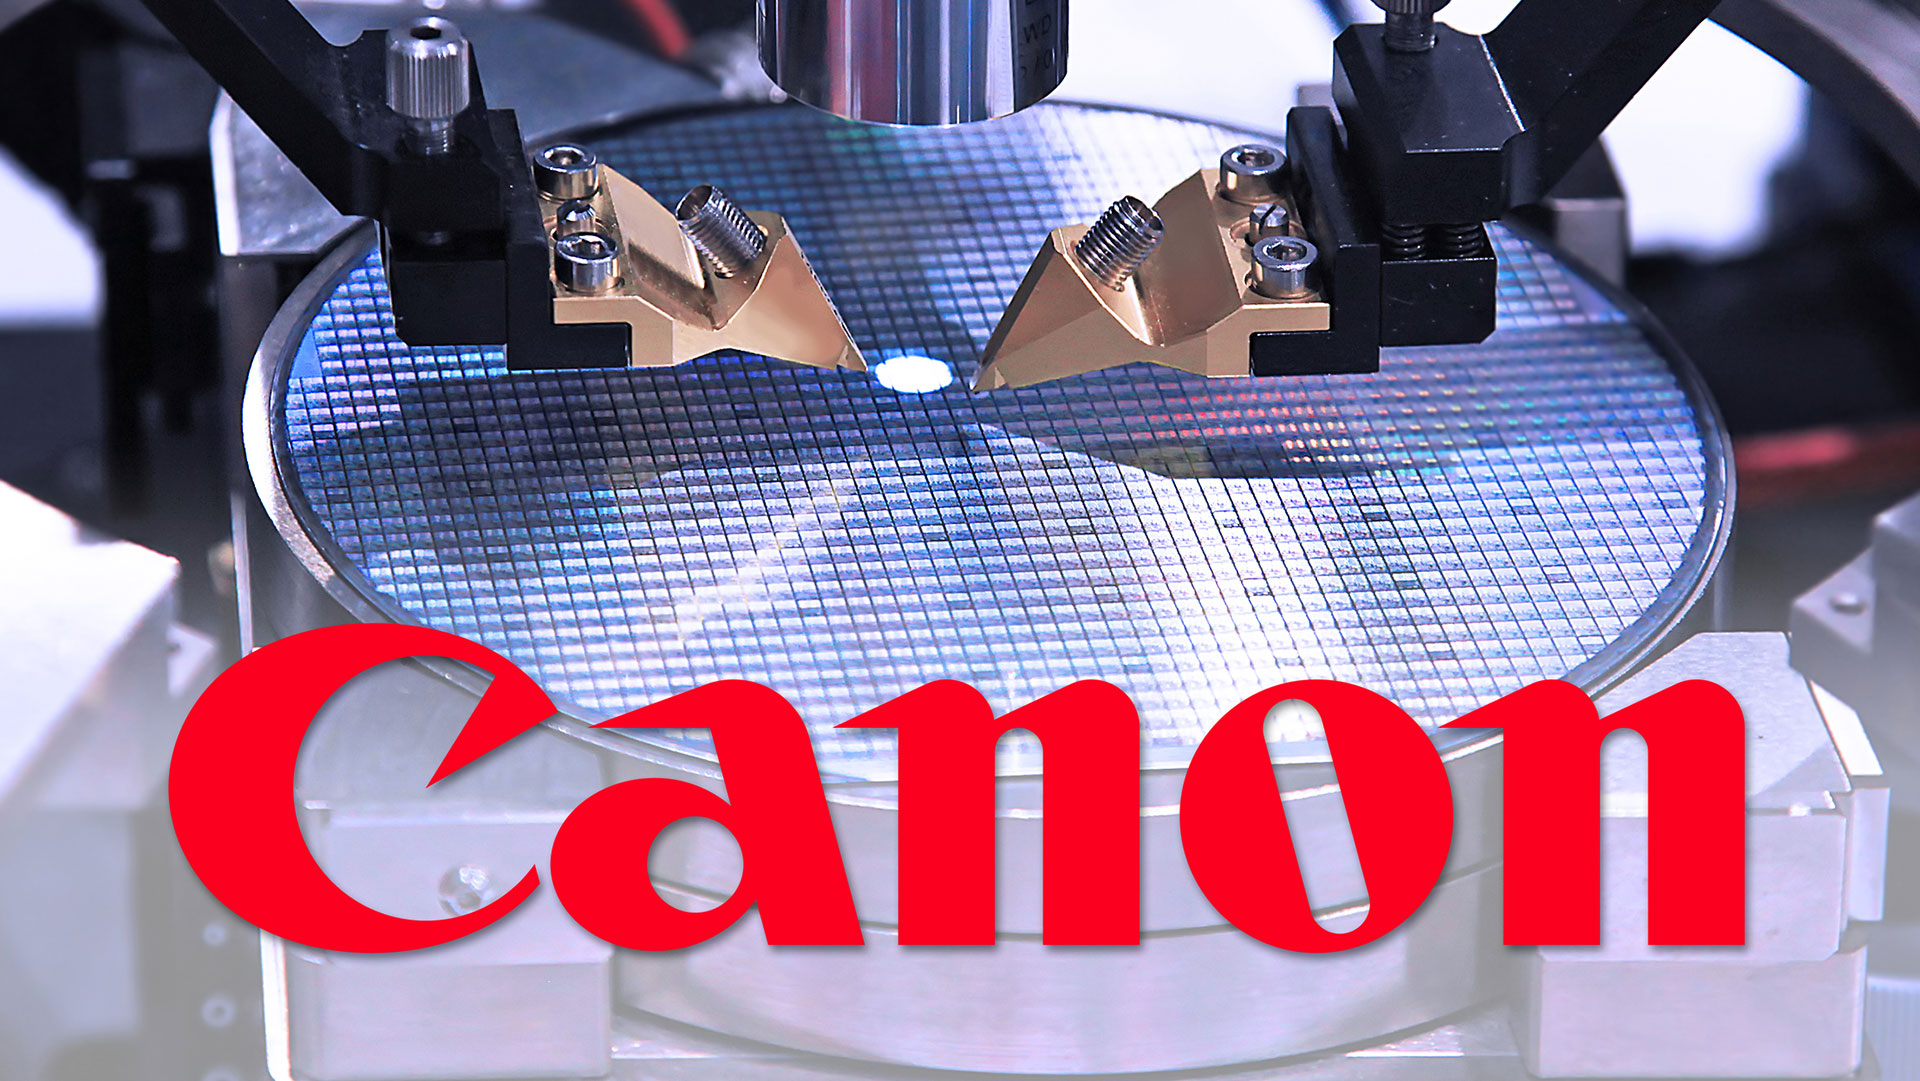 More new Canon products cancelled or delayed due to supply chain issues - DIY Photography